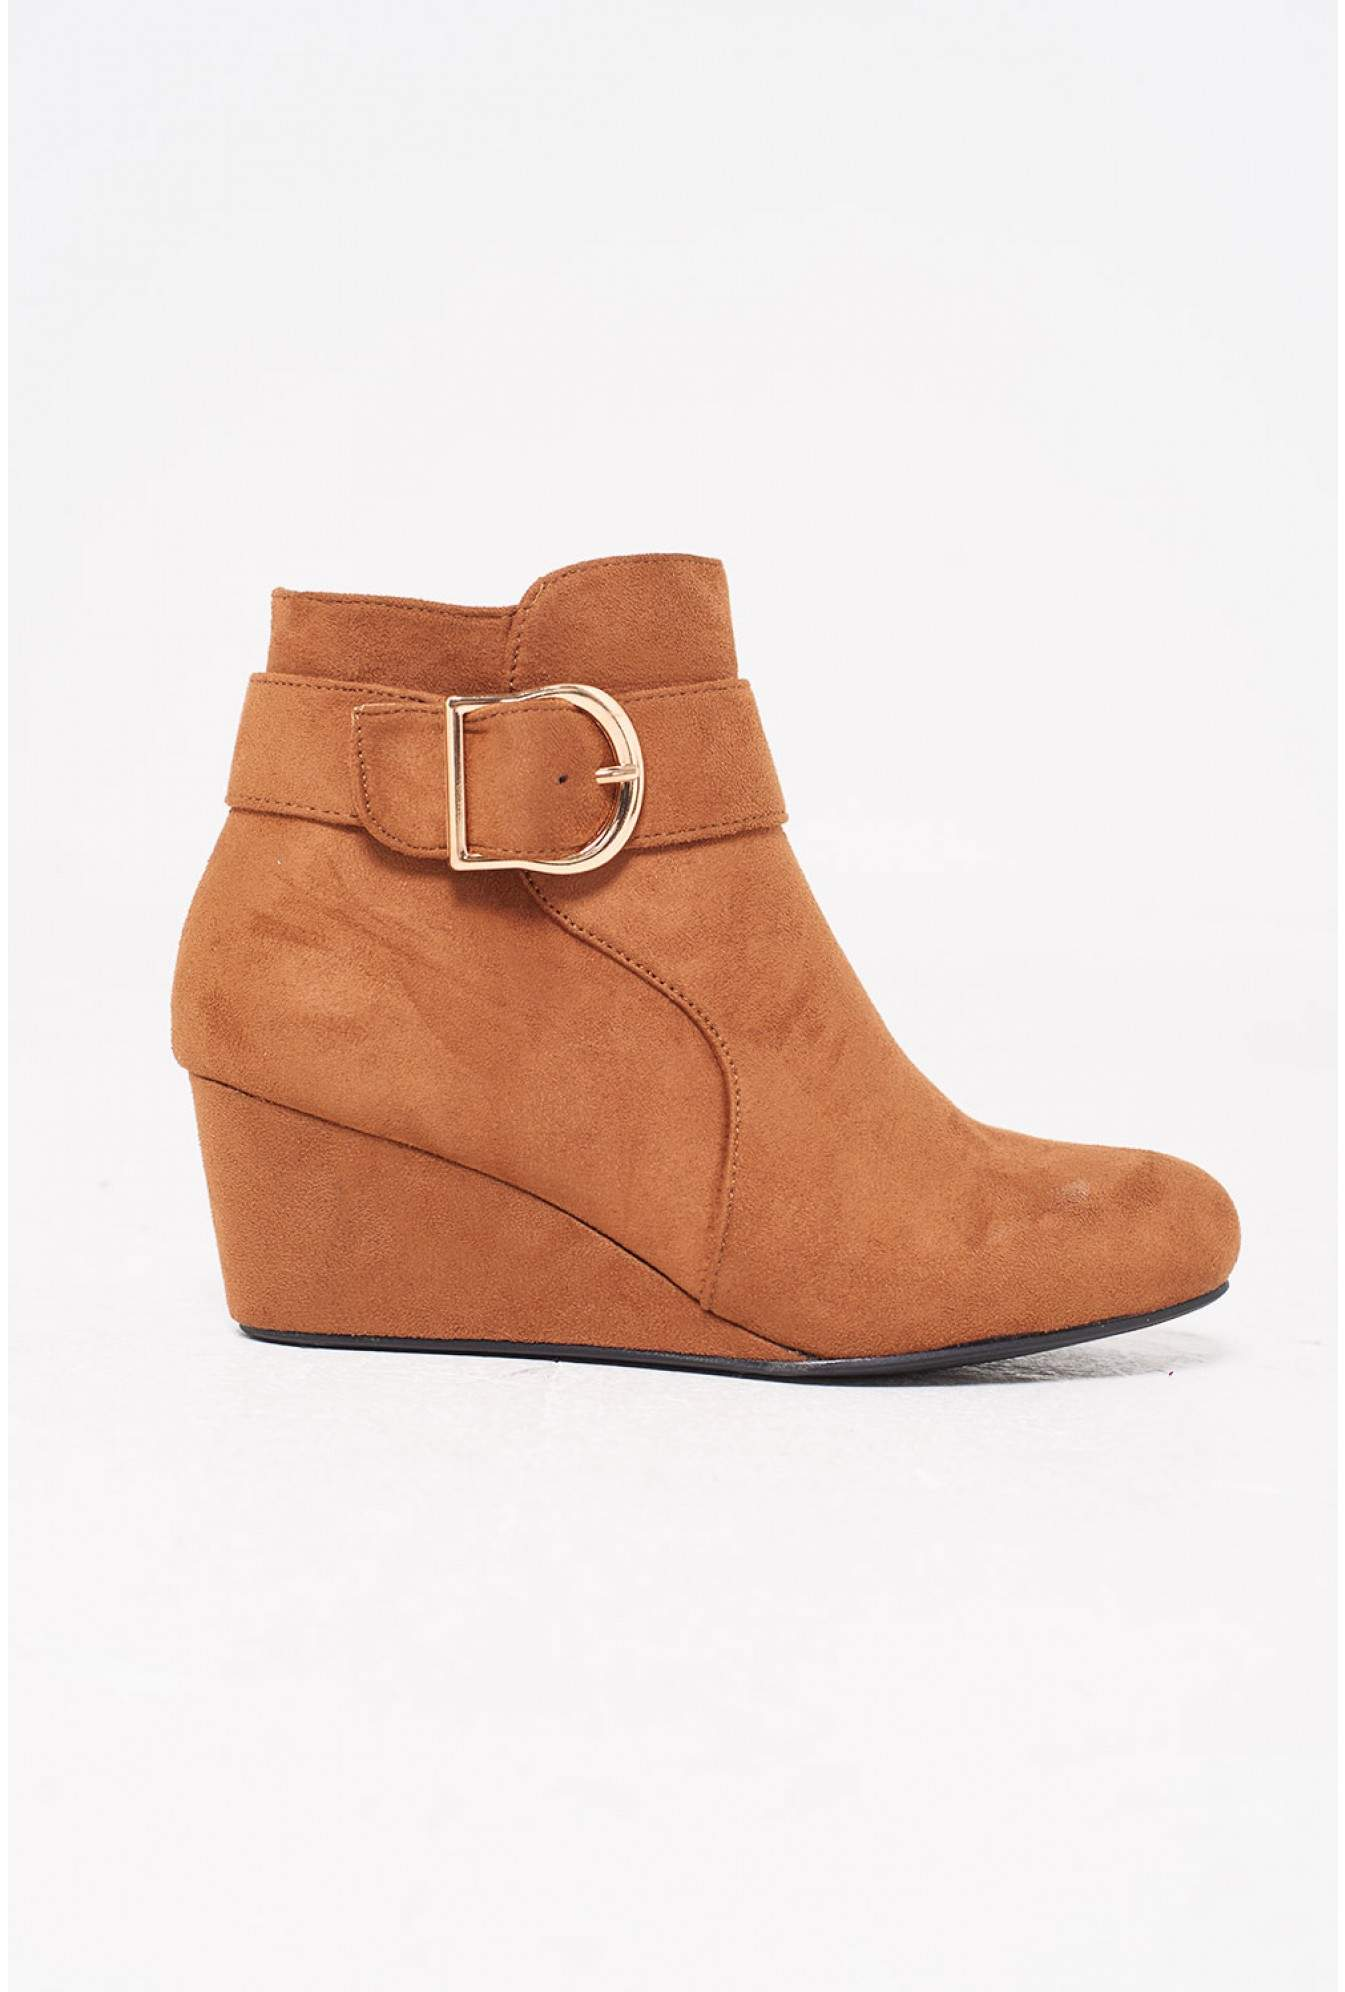 cebe2724c91 Winter Wedge Ankle Boots in Tan